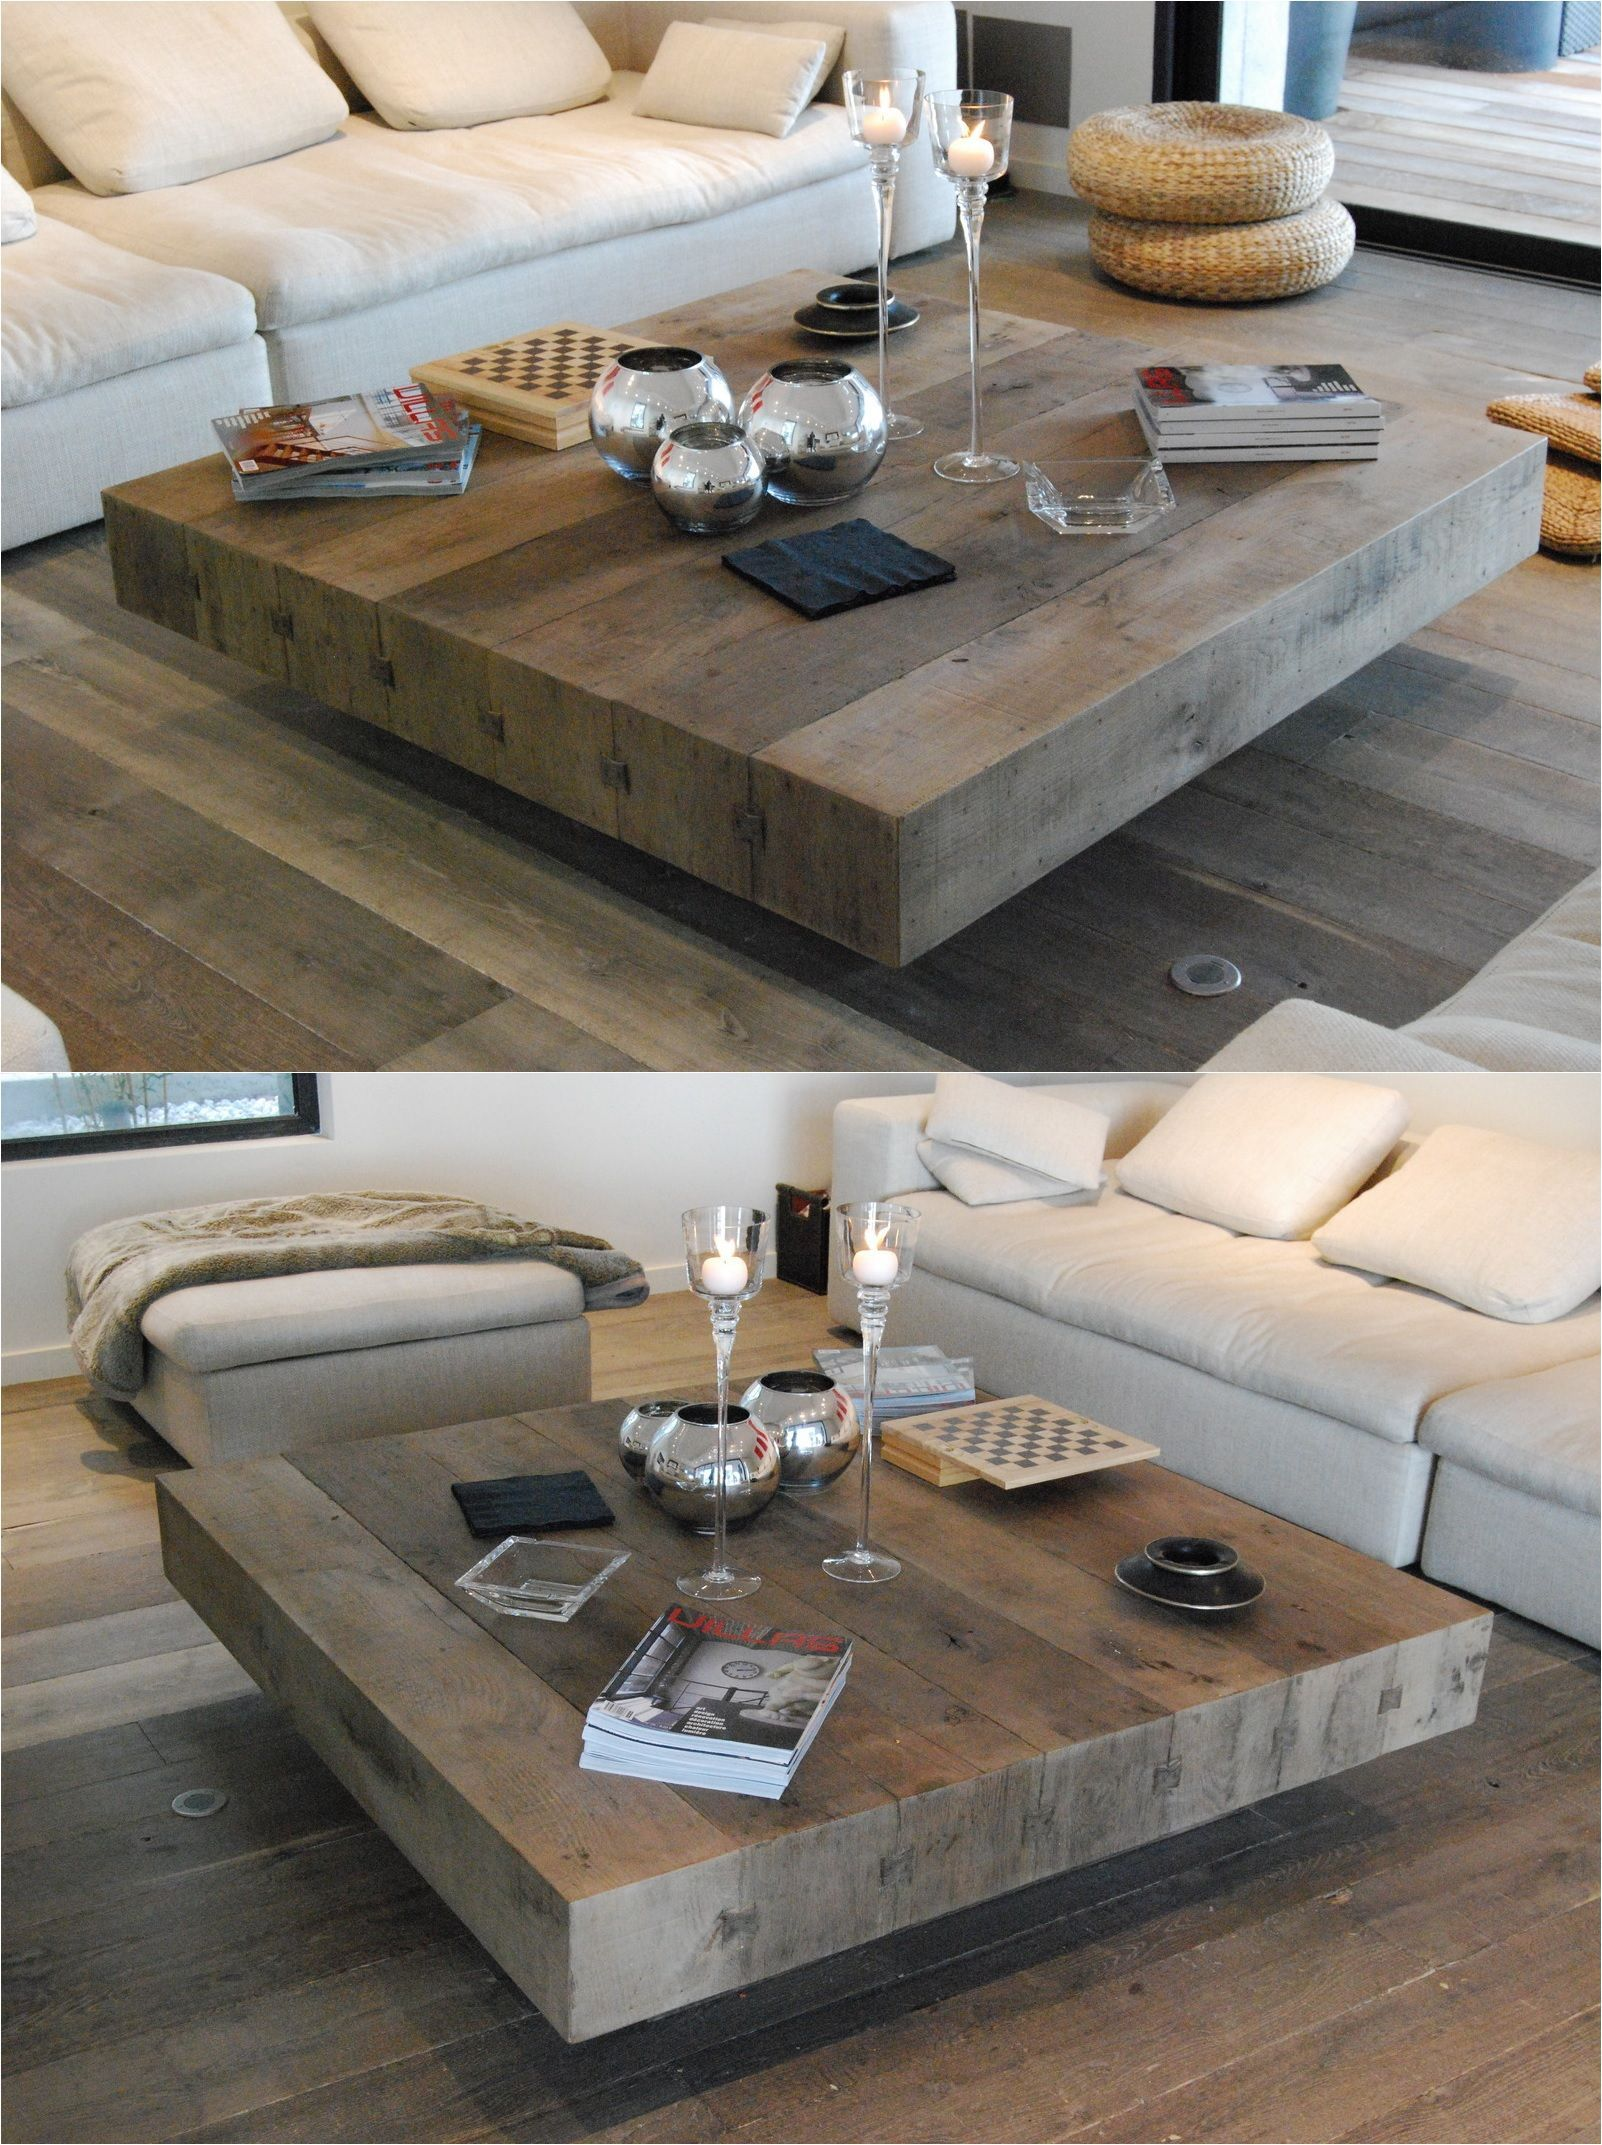 Pin By Shamim Bundakji On Tables In 2020 With Images Diy